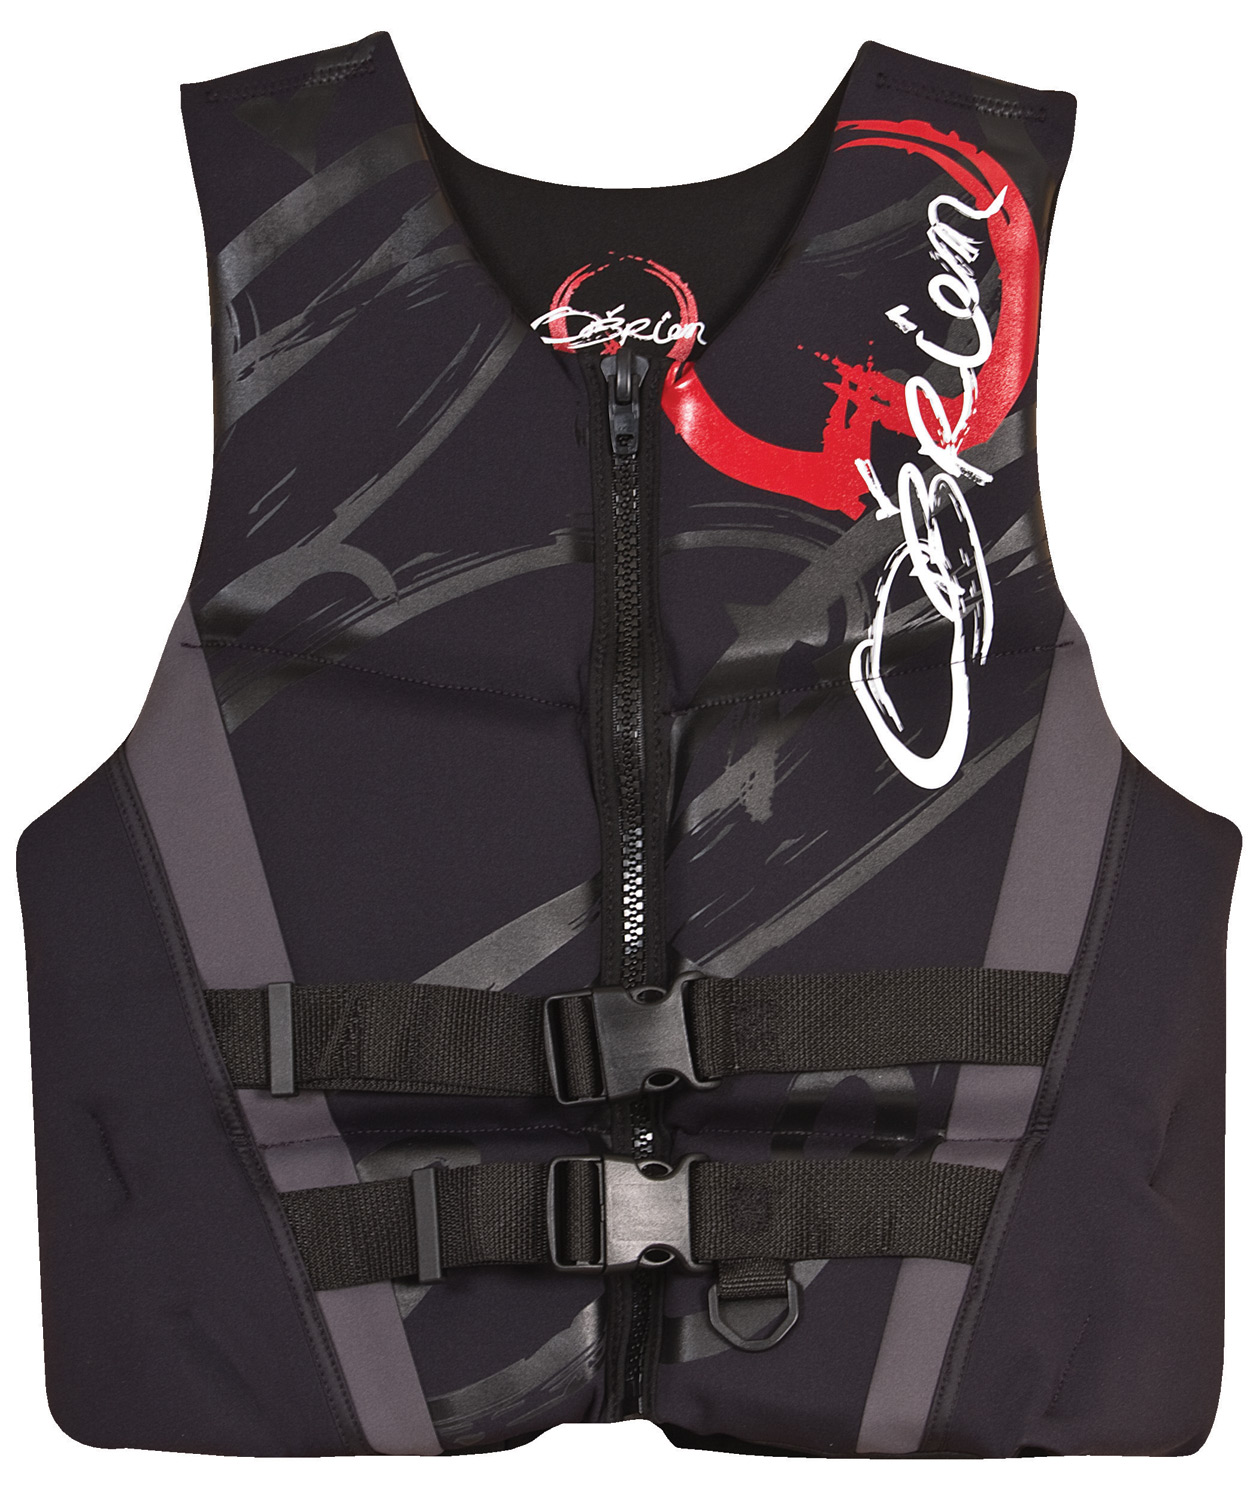 Wake Key Features of the O'Brien Flex V Back Wakeboard Vest: Quick Dry Technology Zip closure and 2 belts finish that custom fit Wide armholes designed for activity Coast Guard approved - $59.95